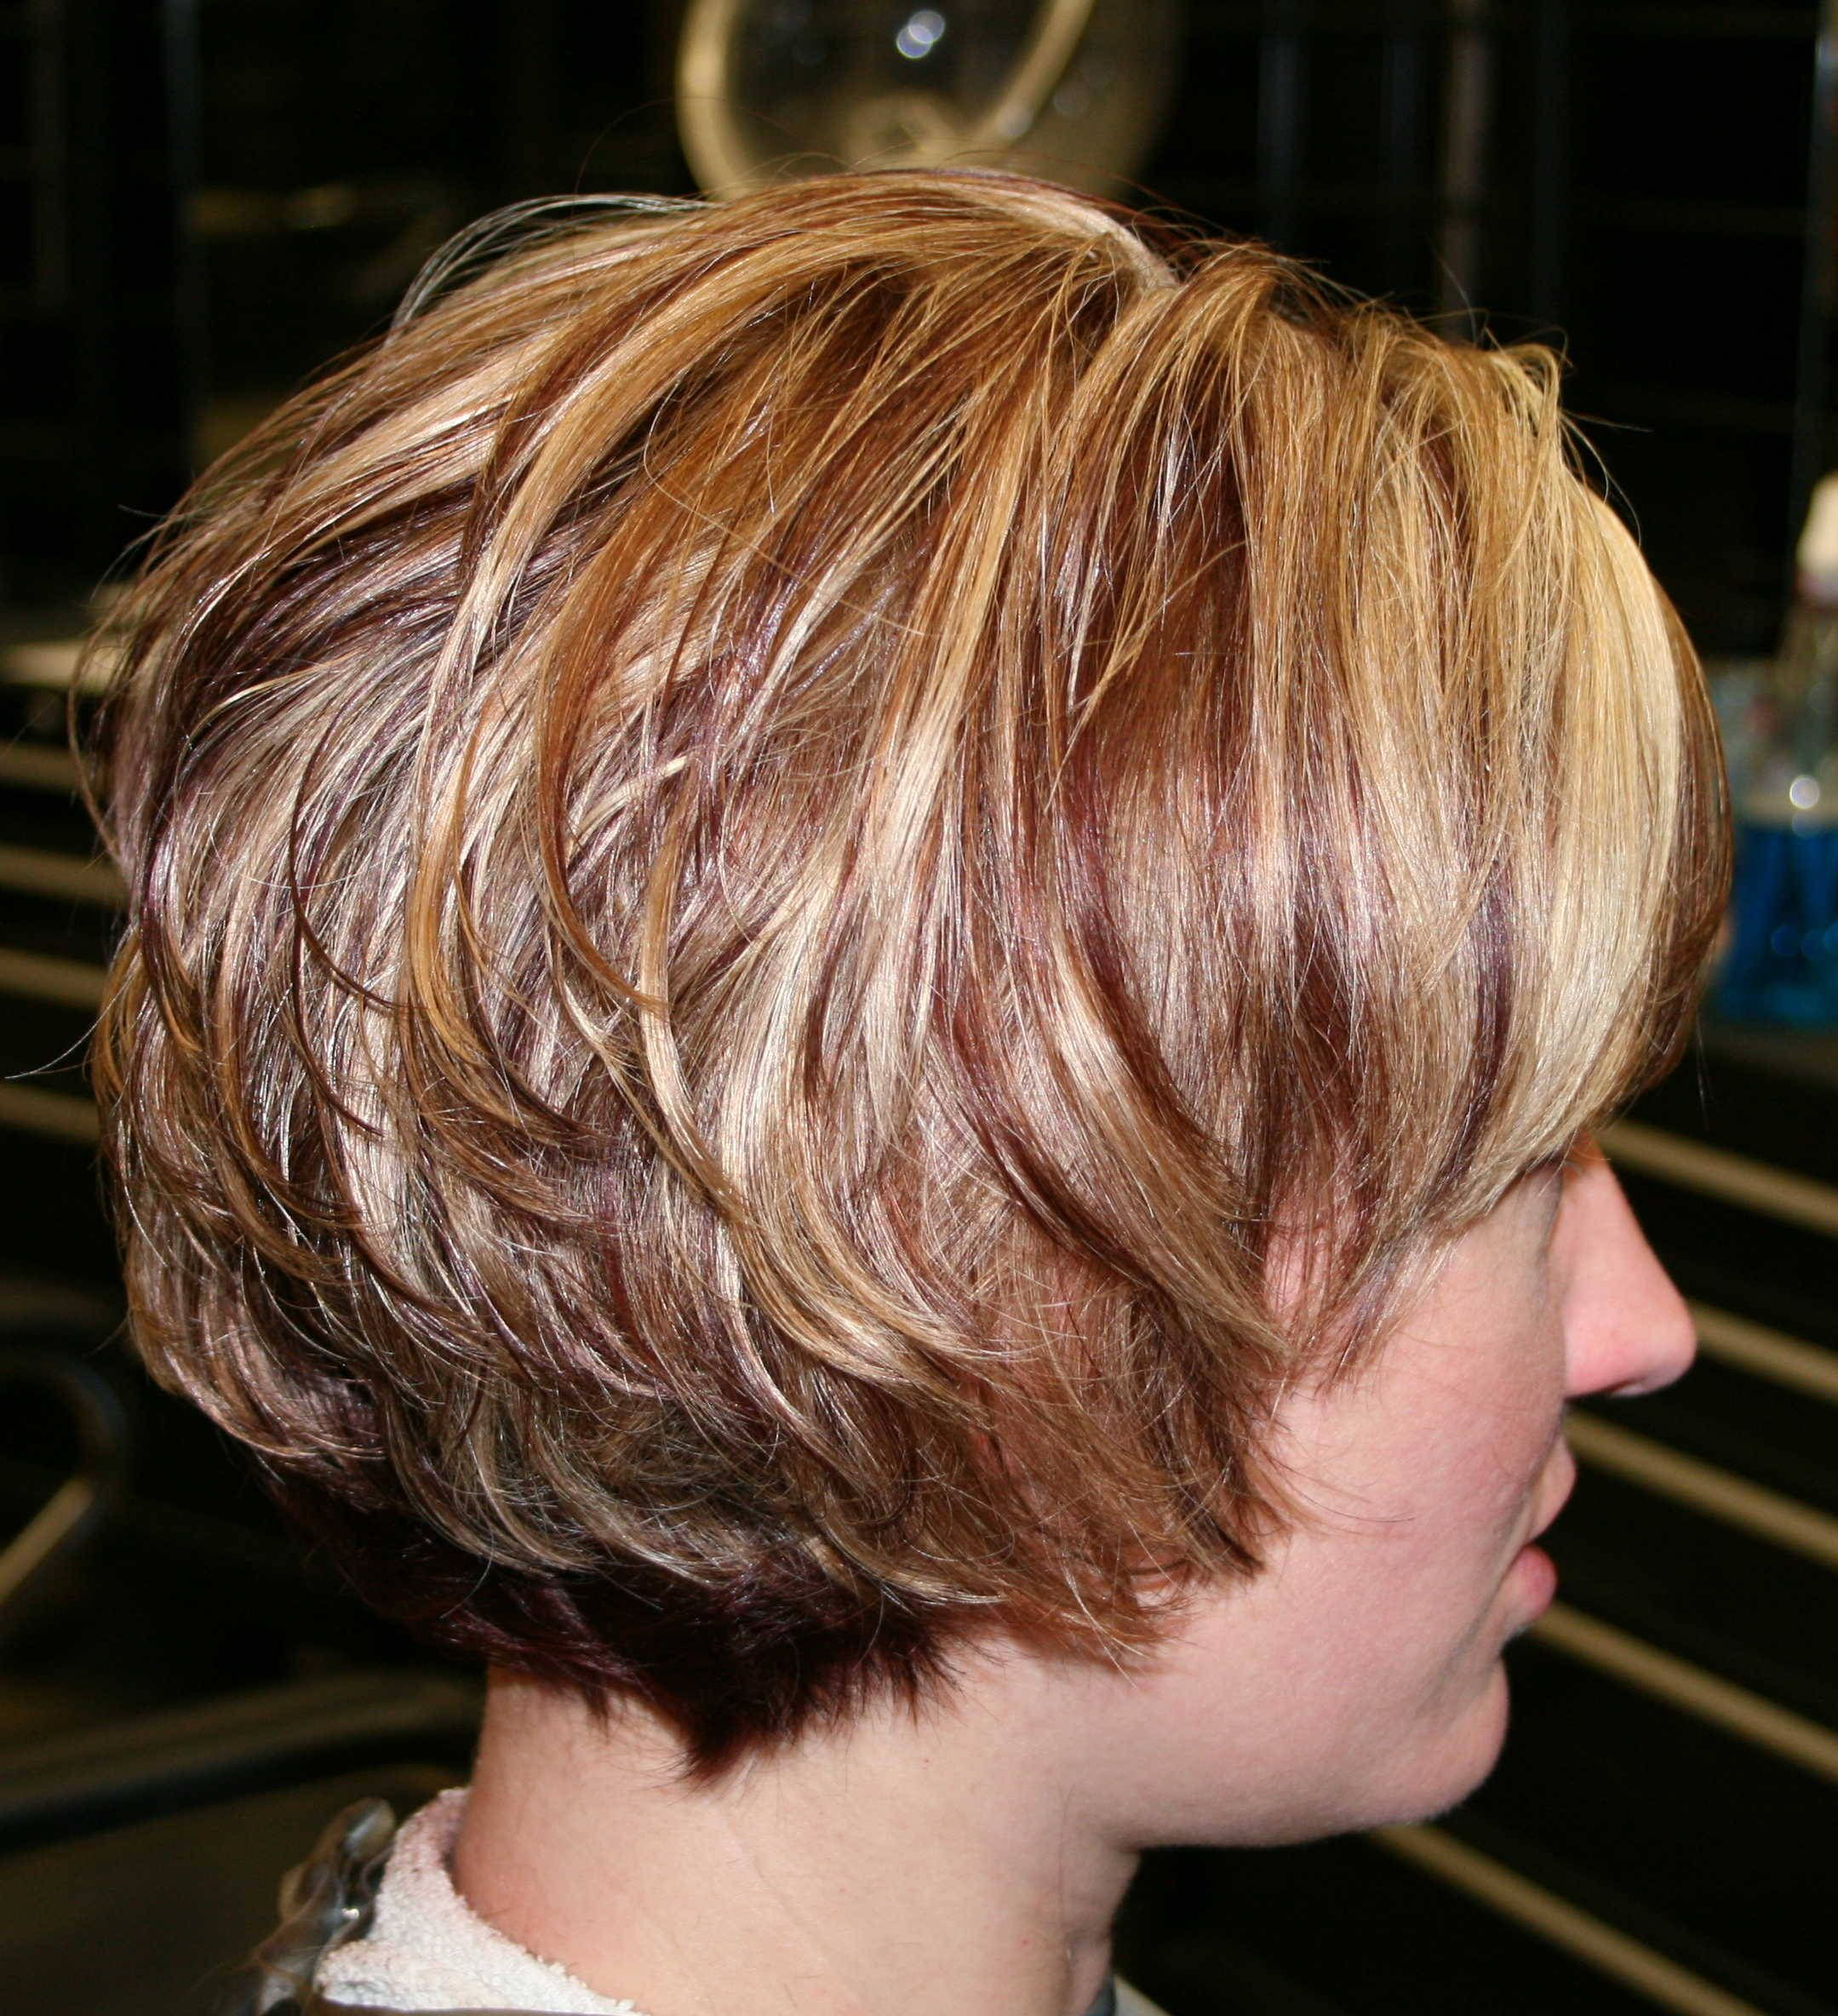 Hair Styles Haircuts and Color and the Hottest Trends